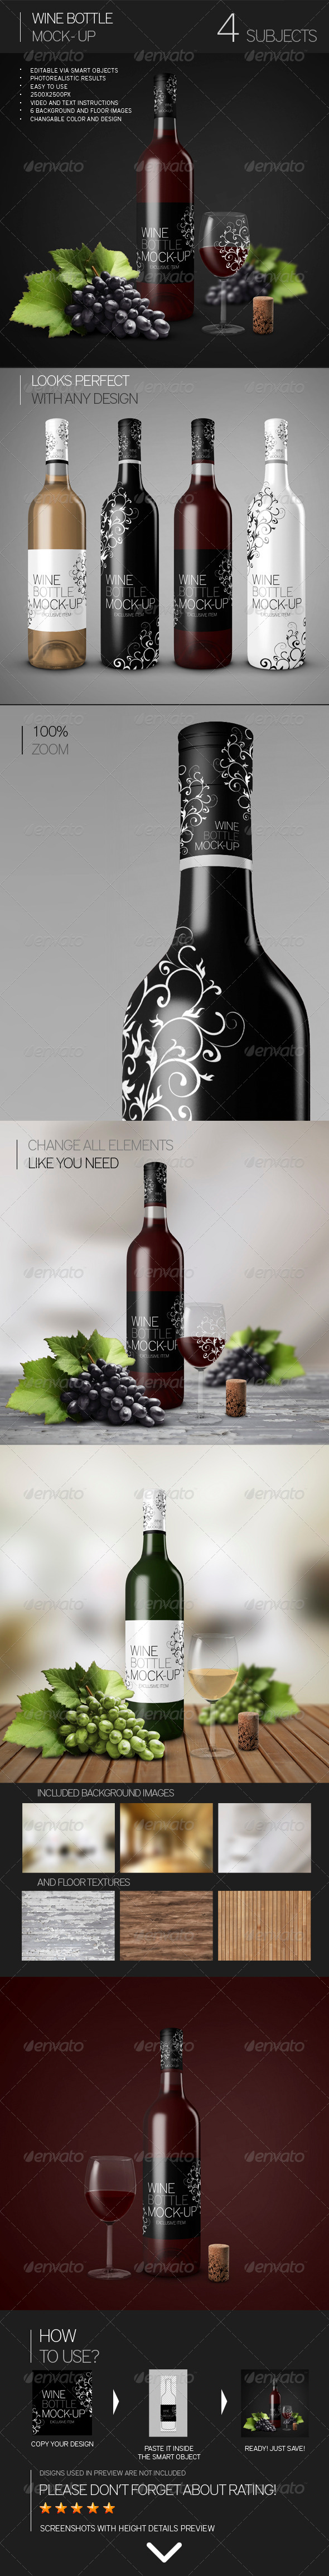 Wine Bottle Mock-Up - Food and Drink Packaging